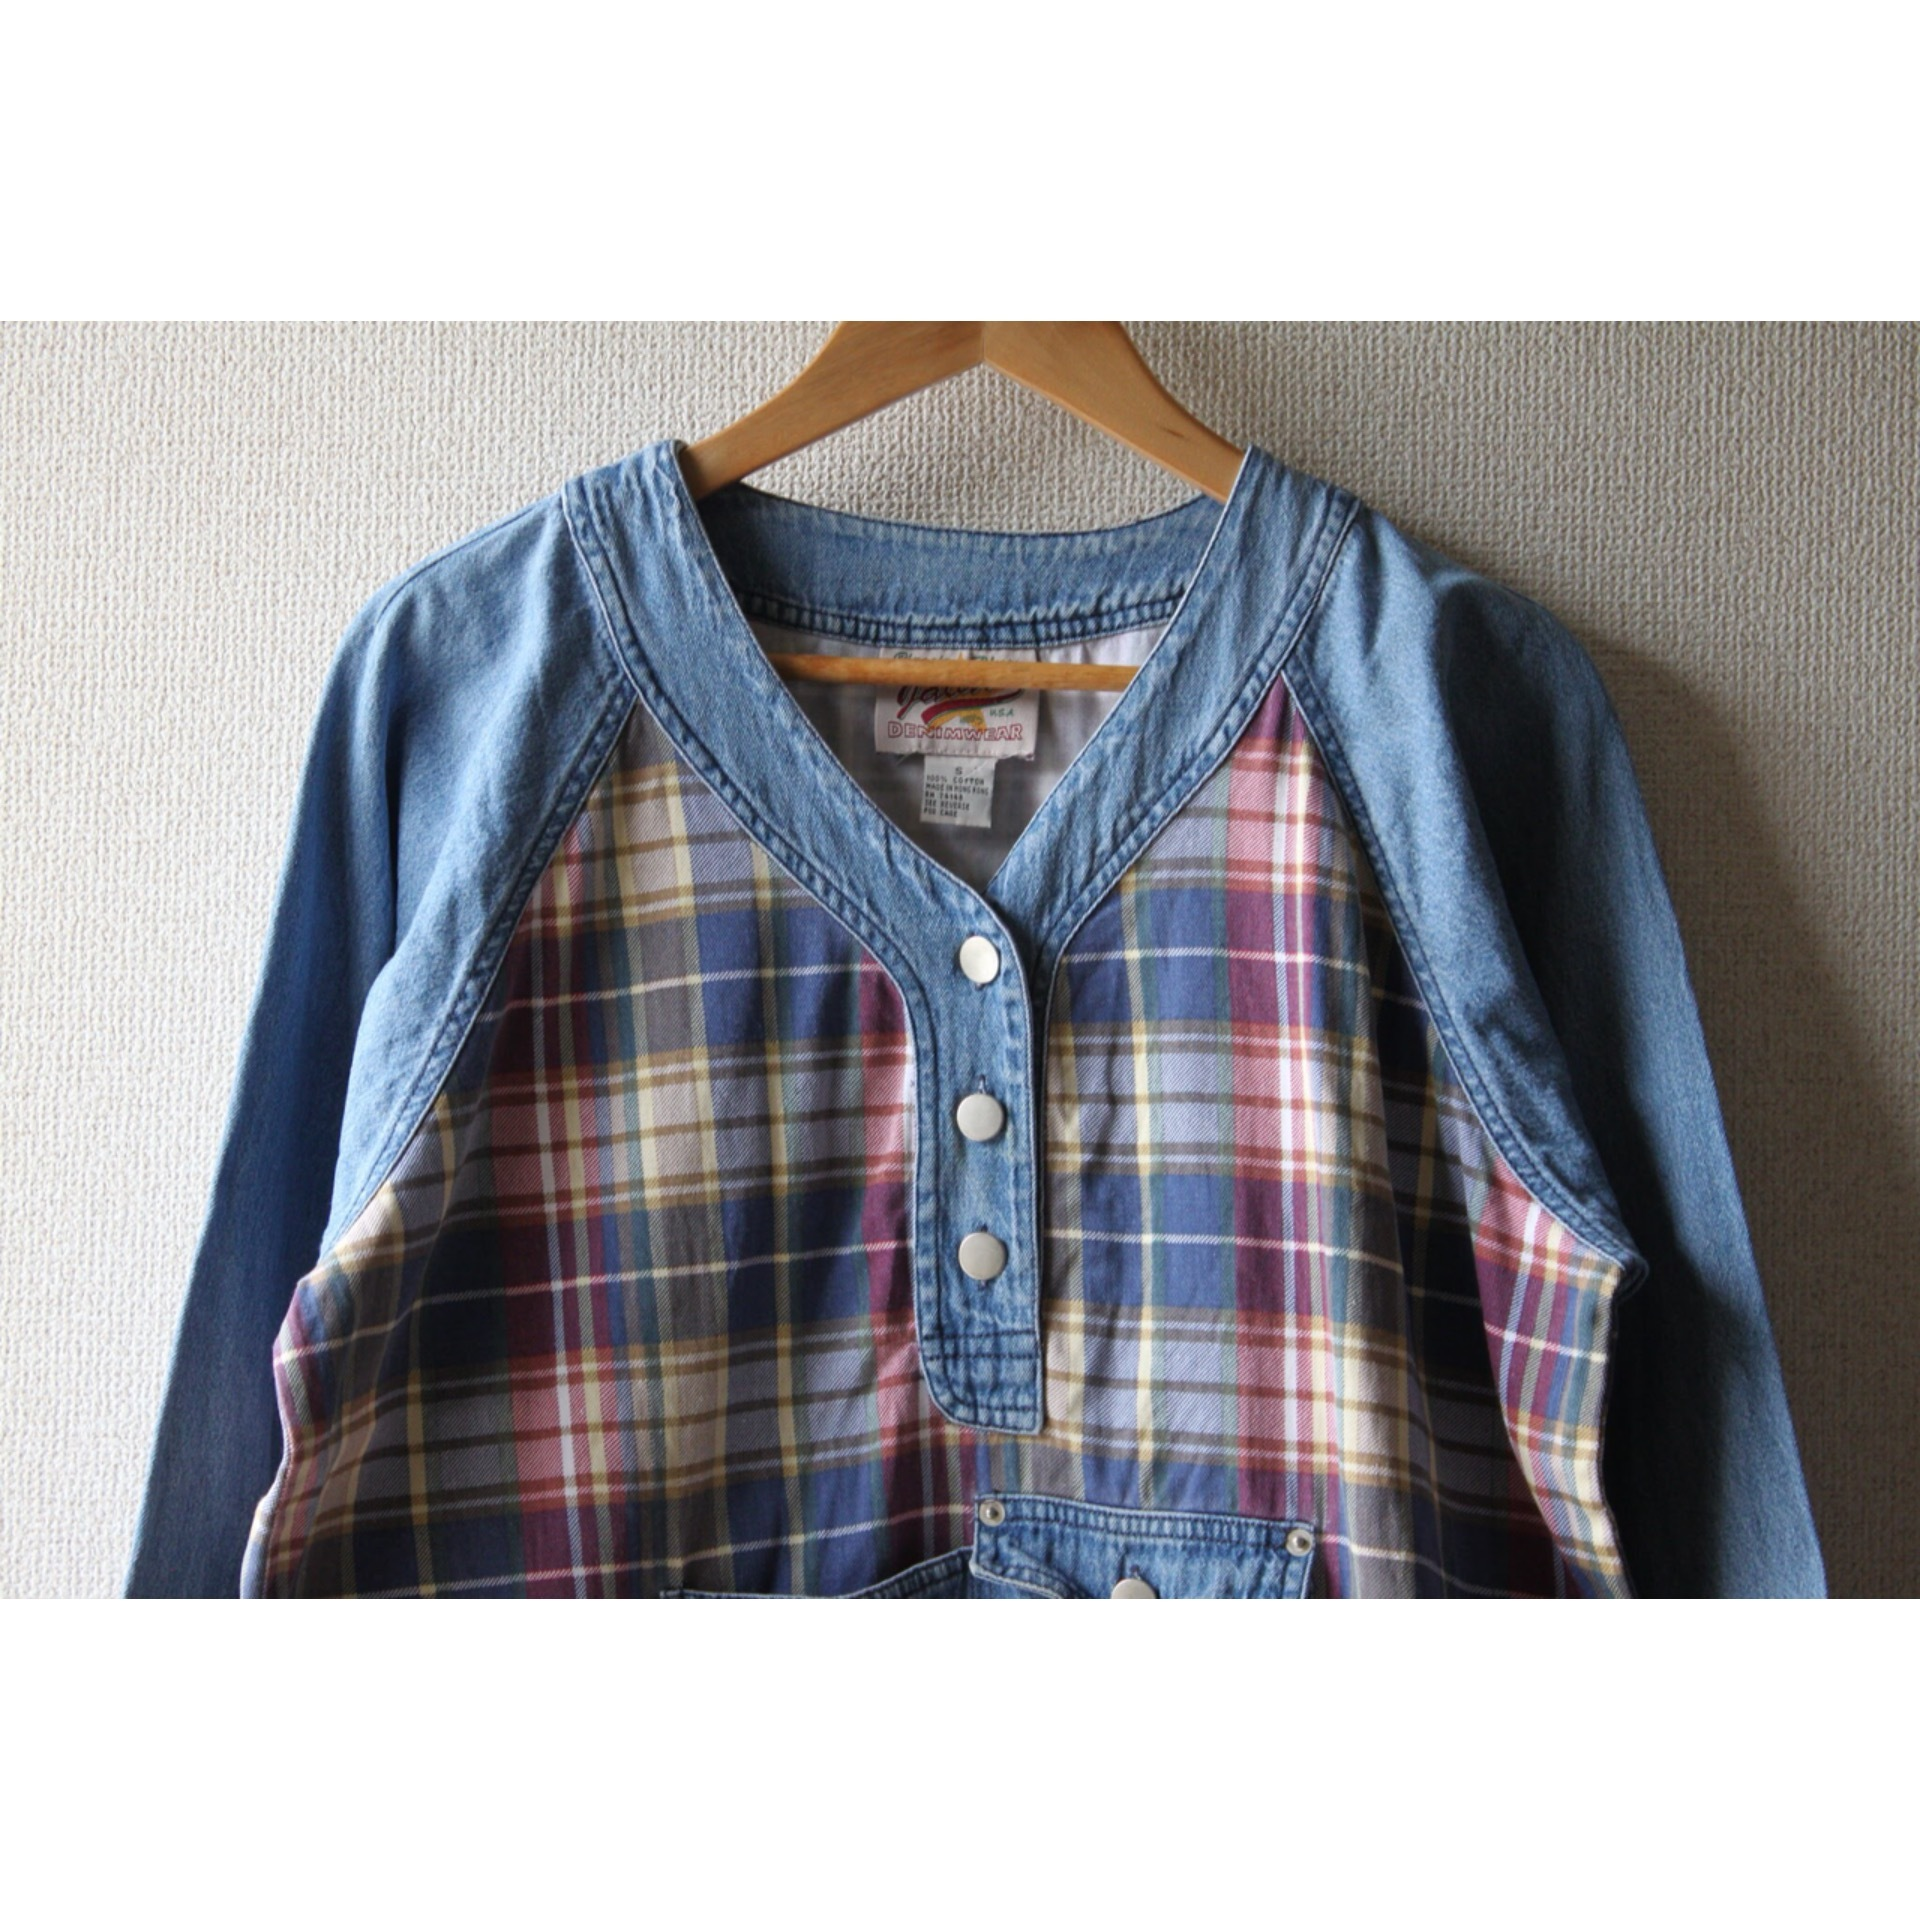 Vintage denim × cotton check pullover jacket